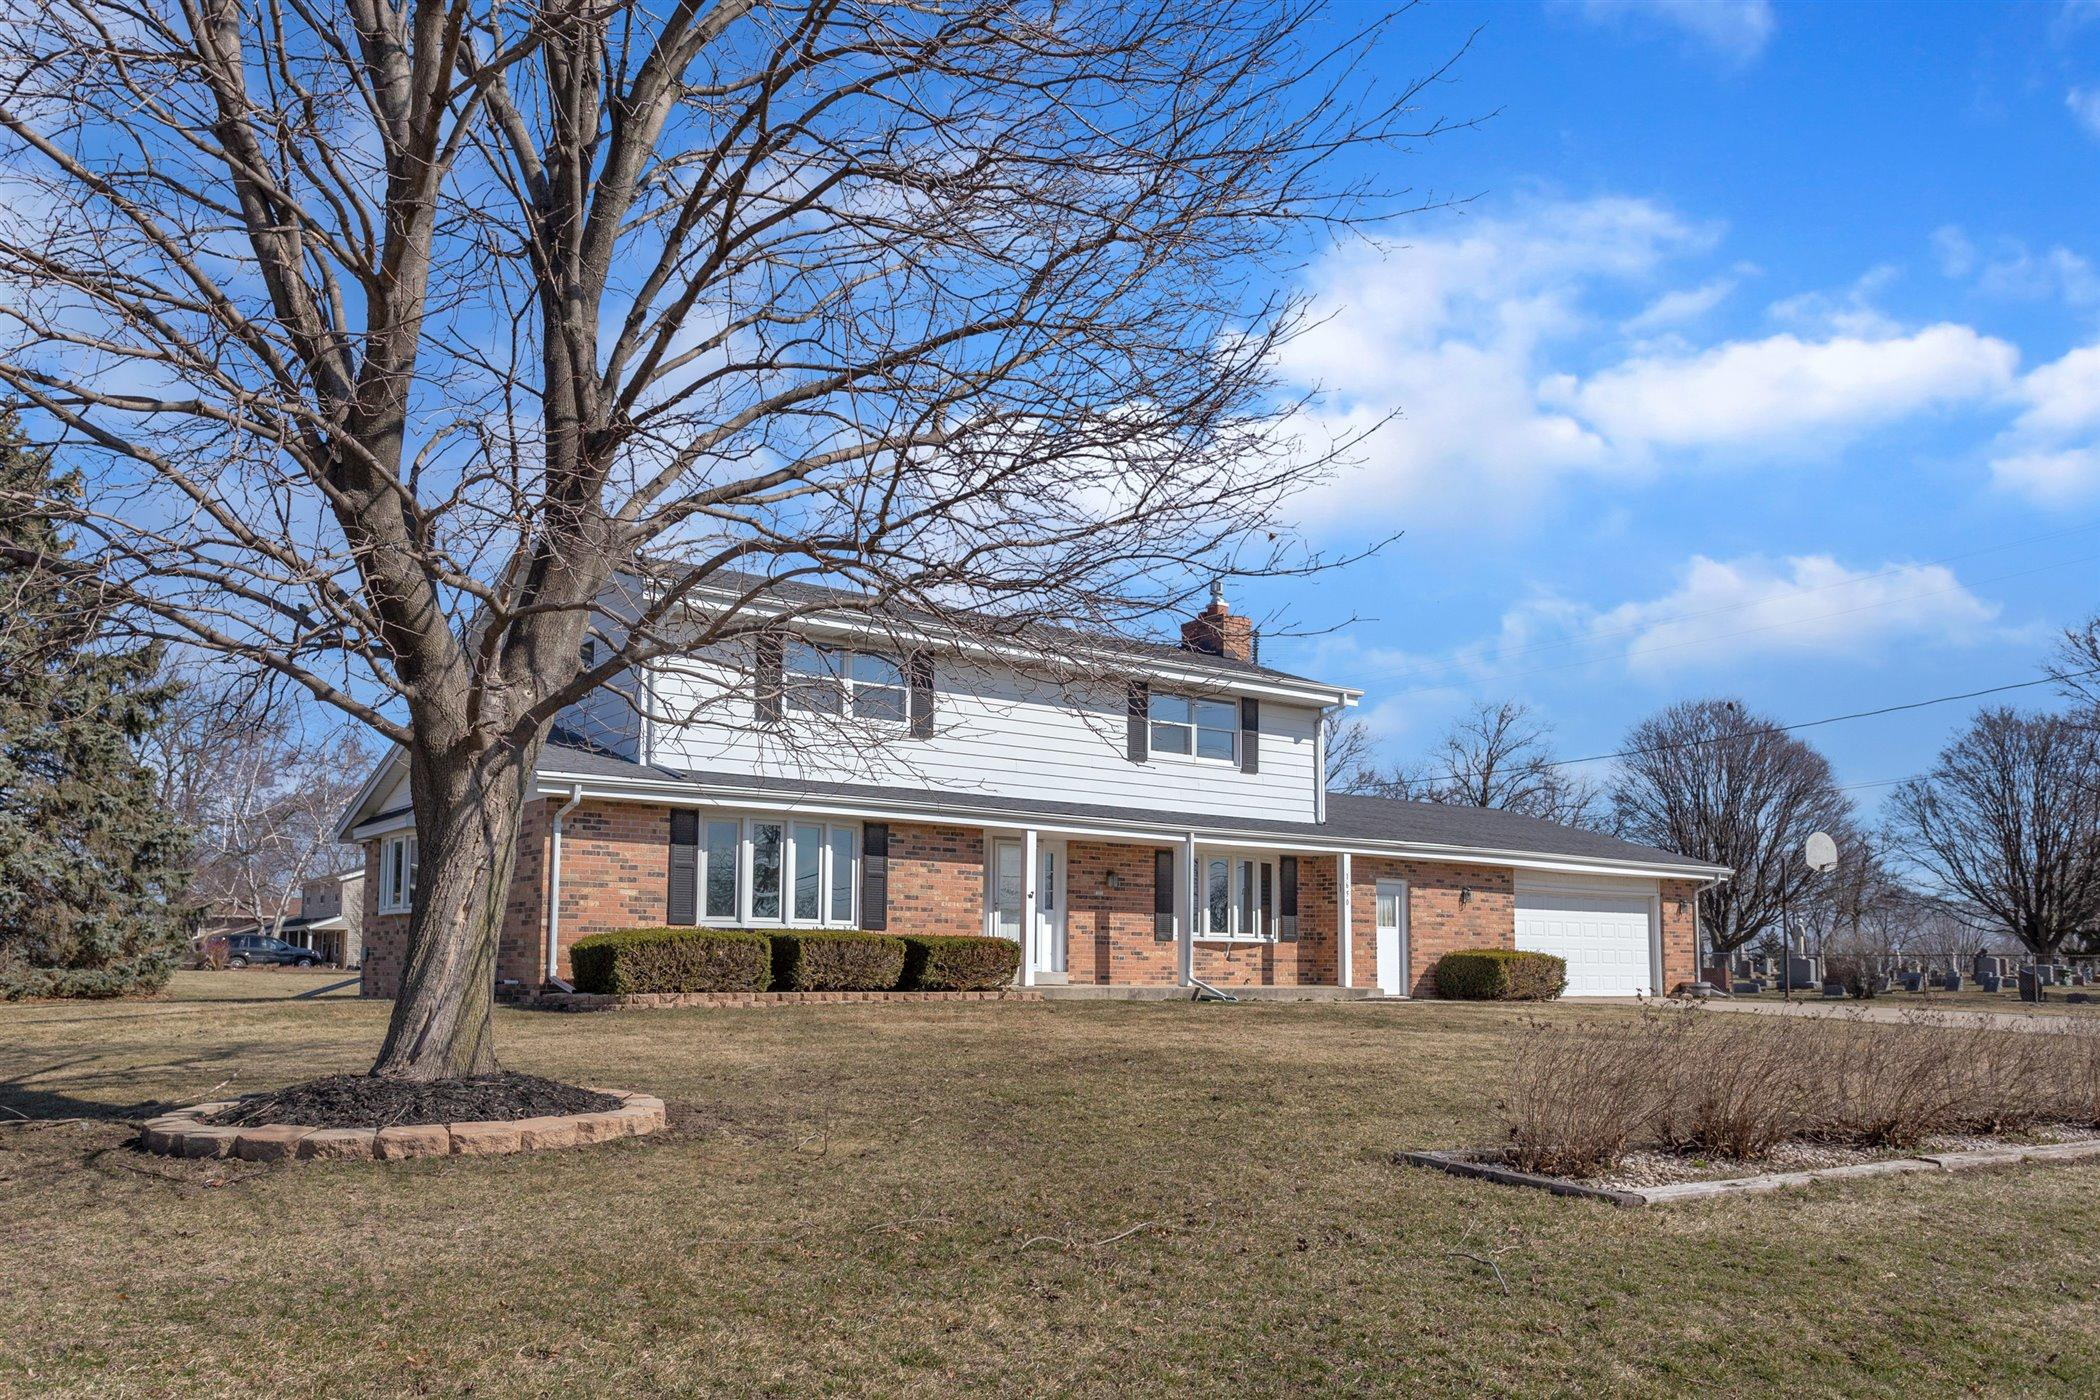 Photo of 1650 E Broadway, Waukesha, WI 53186